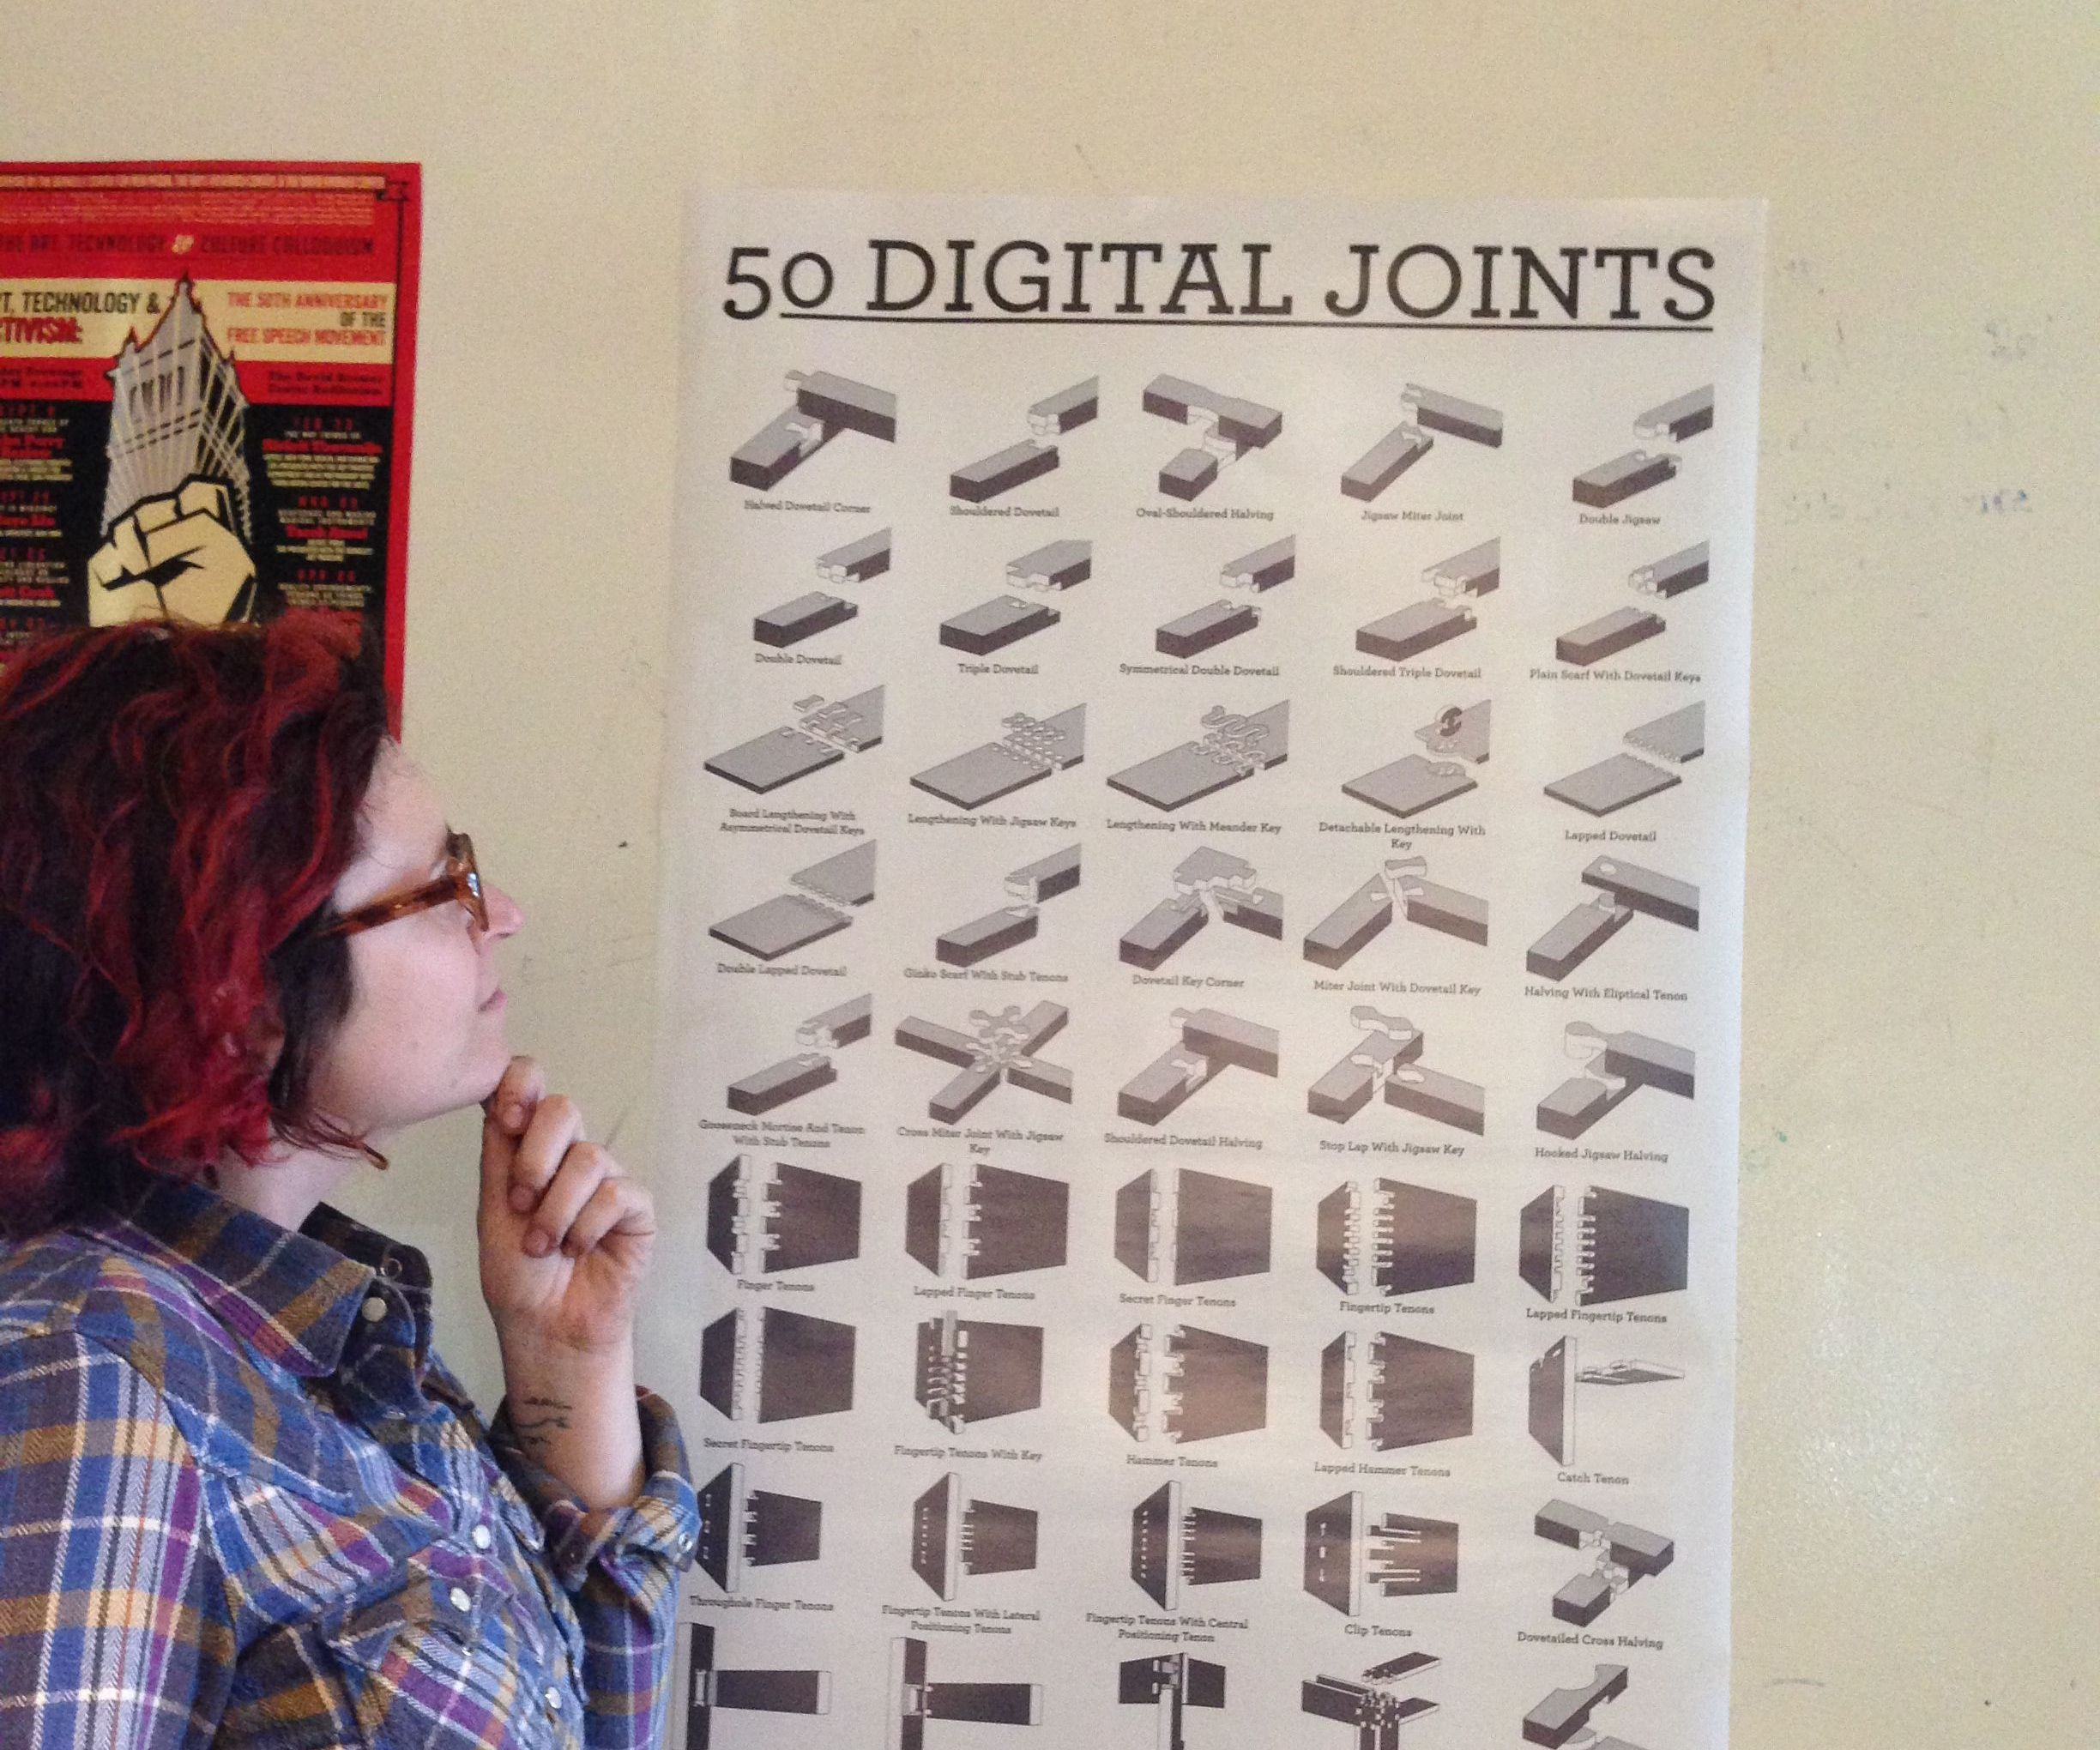 50 Digital Joints: poster visual reference